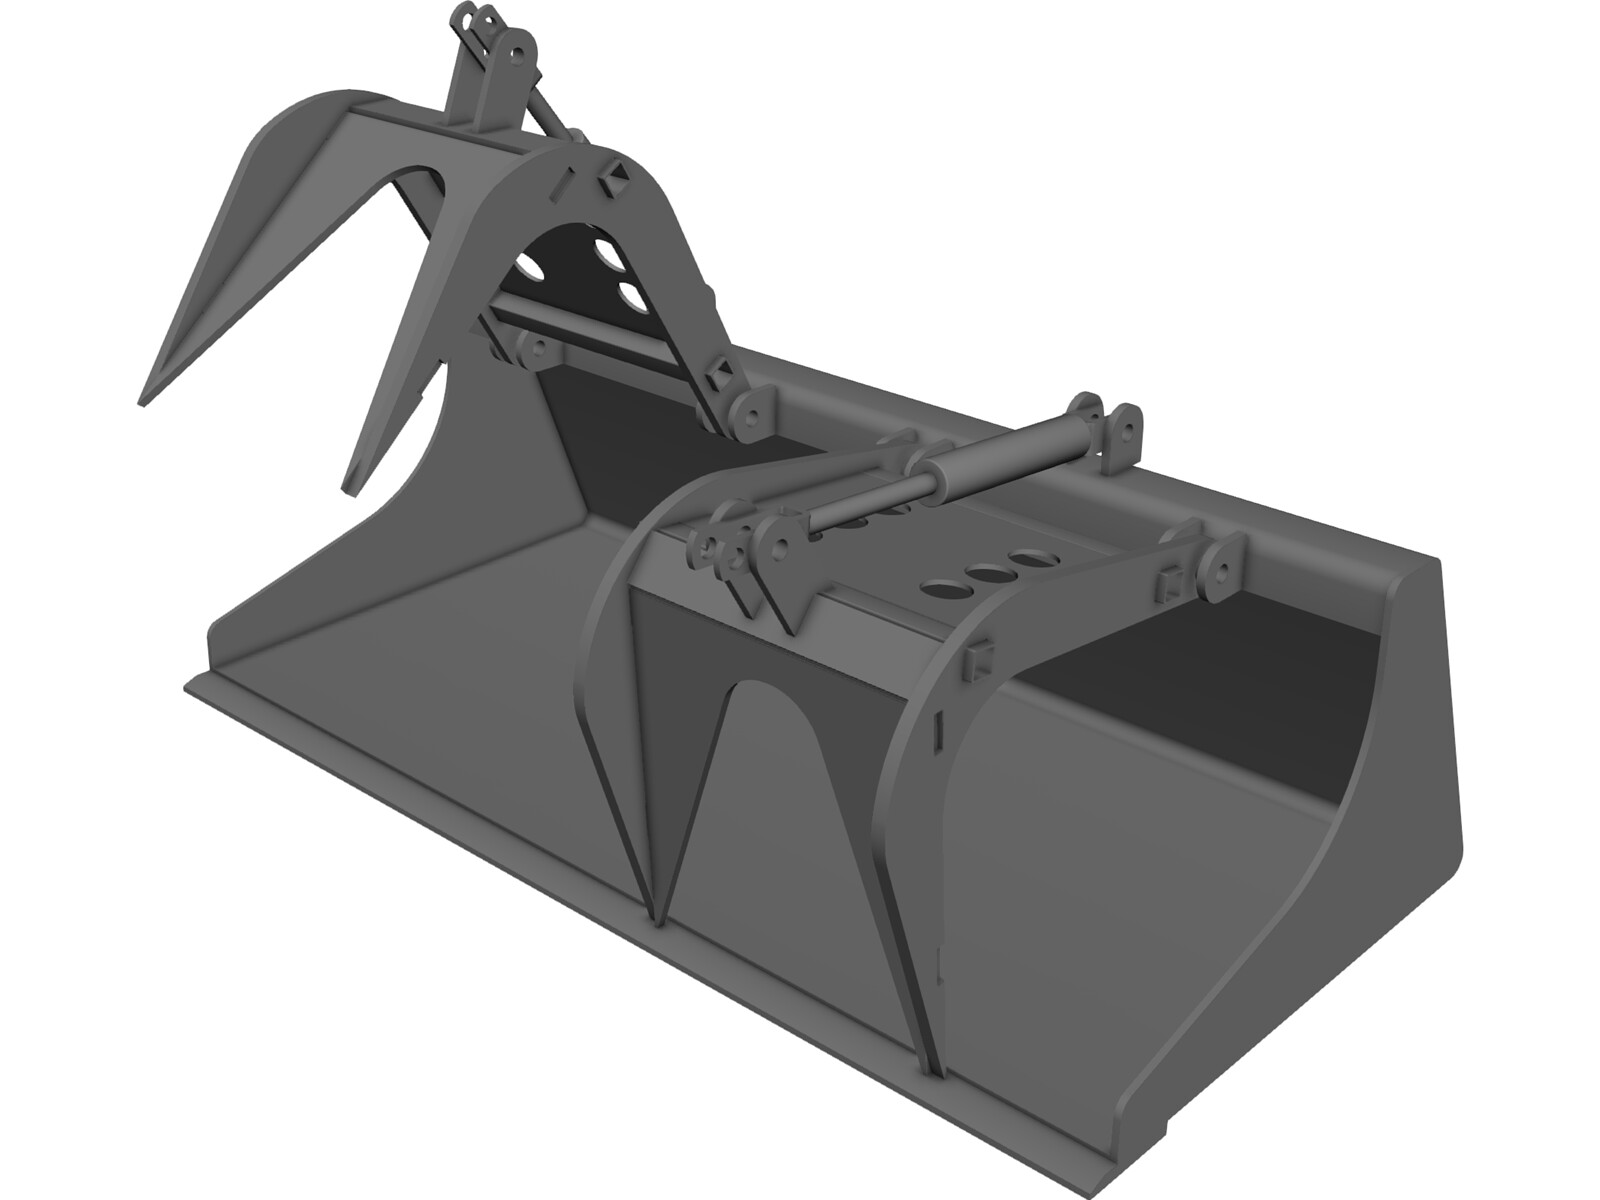 Grapple Bucket 3D CAD Model